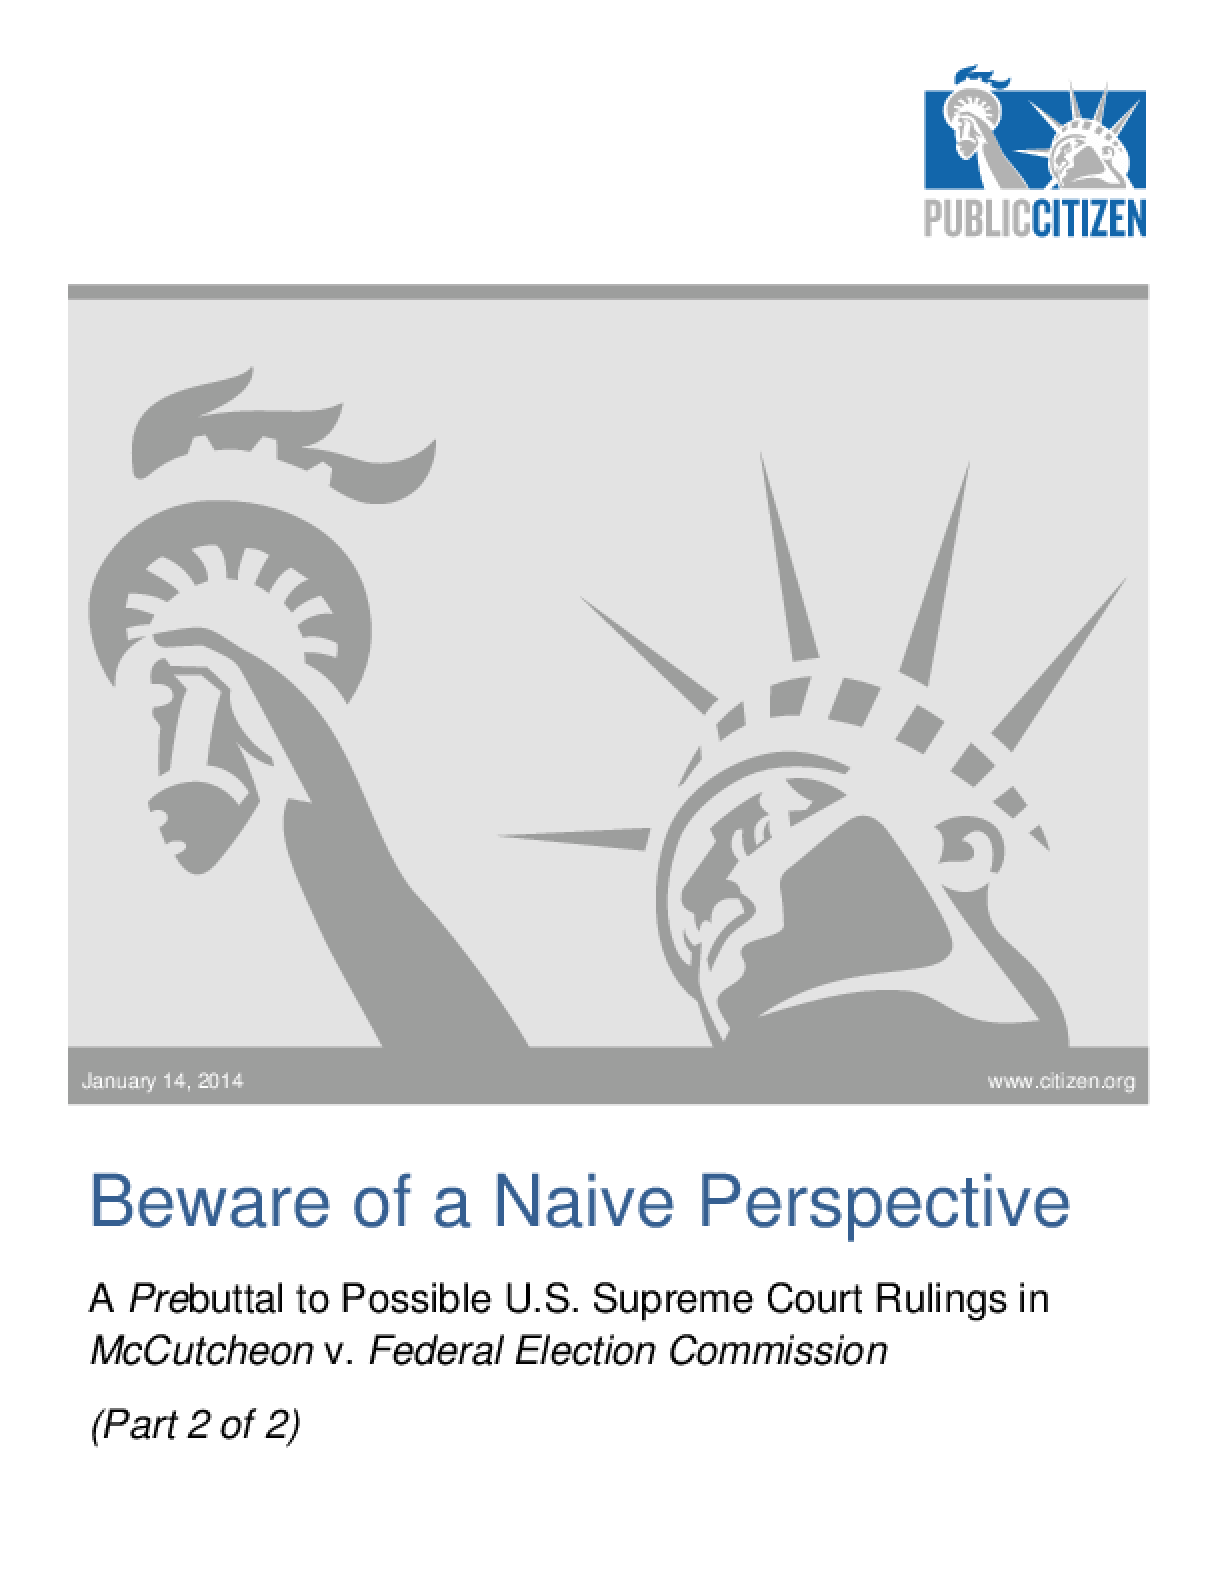 Beware of a Naive Perspective: A Prebuttal to Possible U.S. Supreme Court Rulings in McCutcheon v. Federal Election Commission (Part 2)